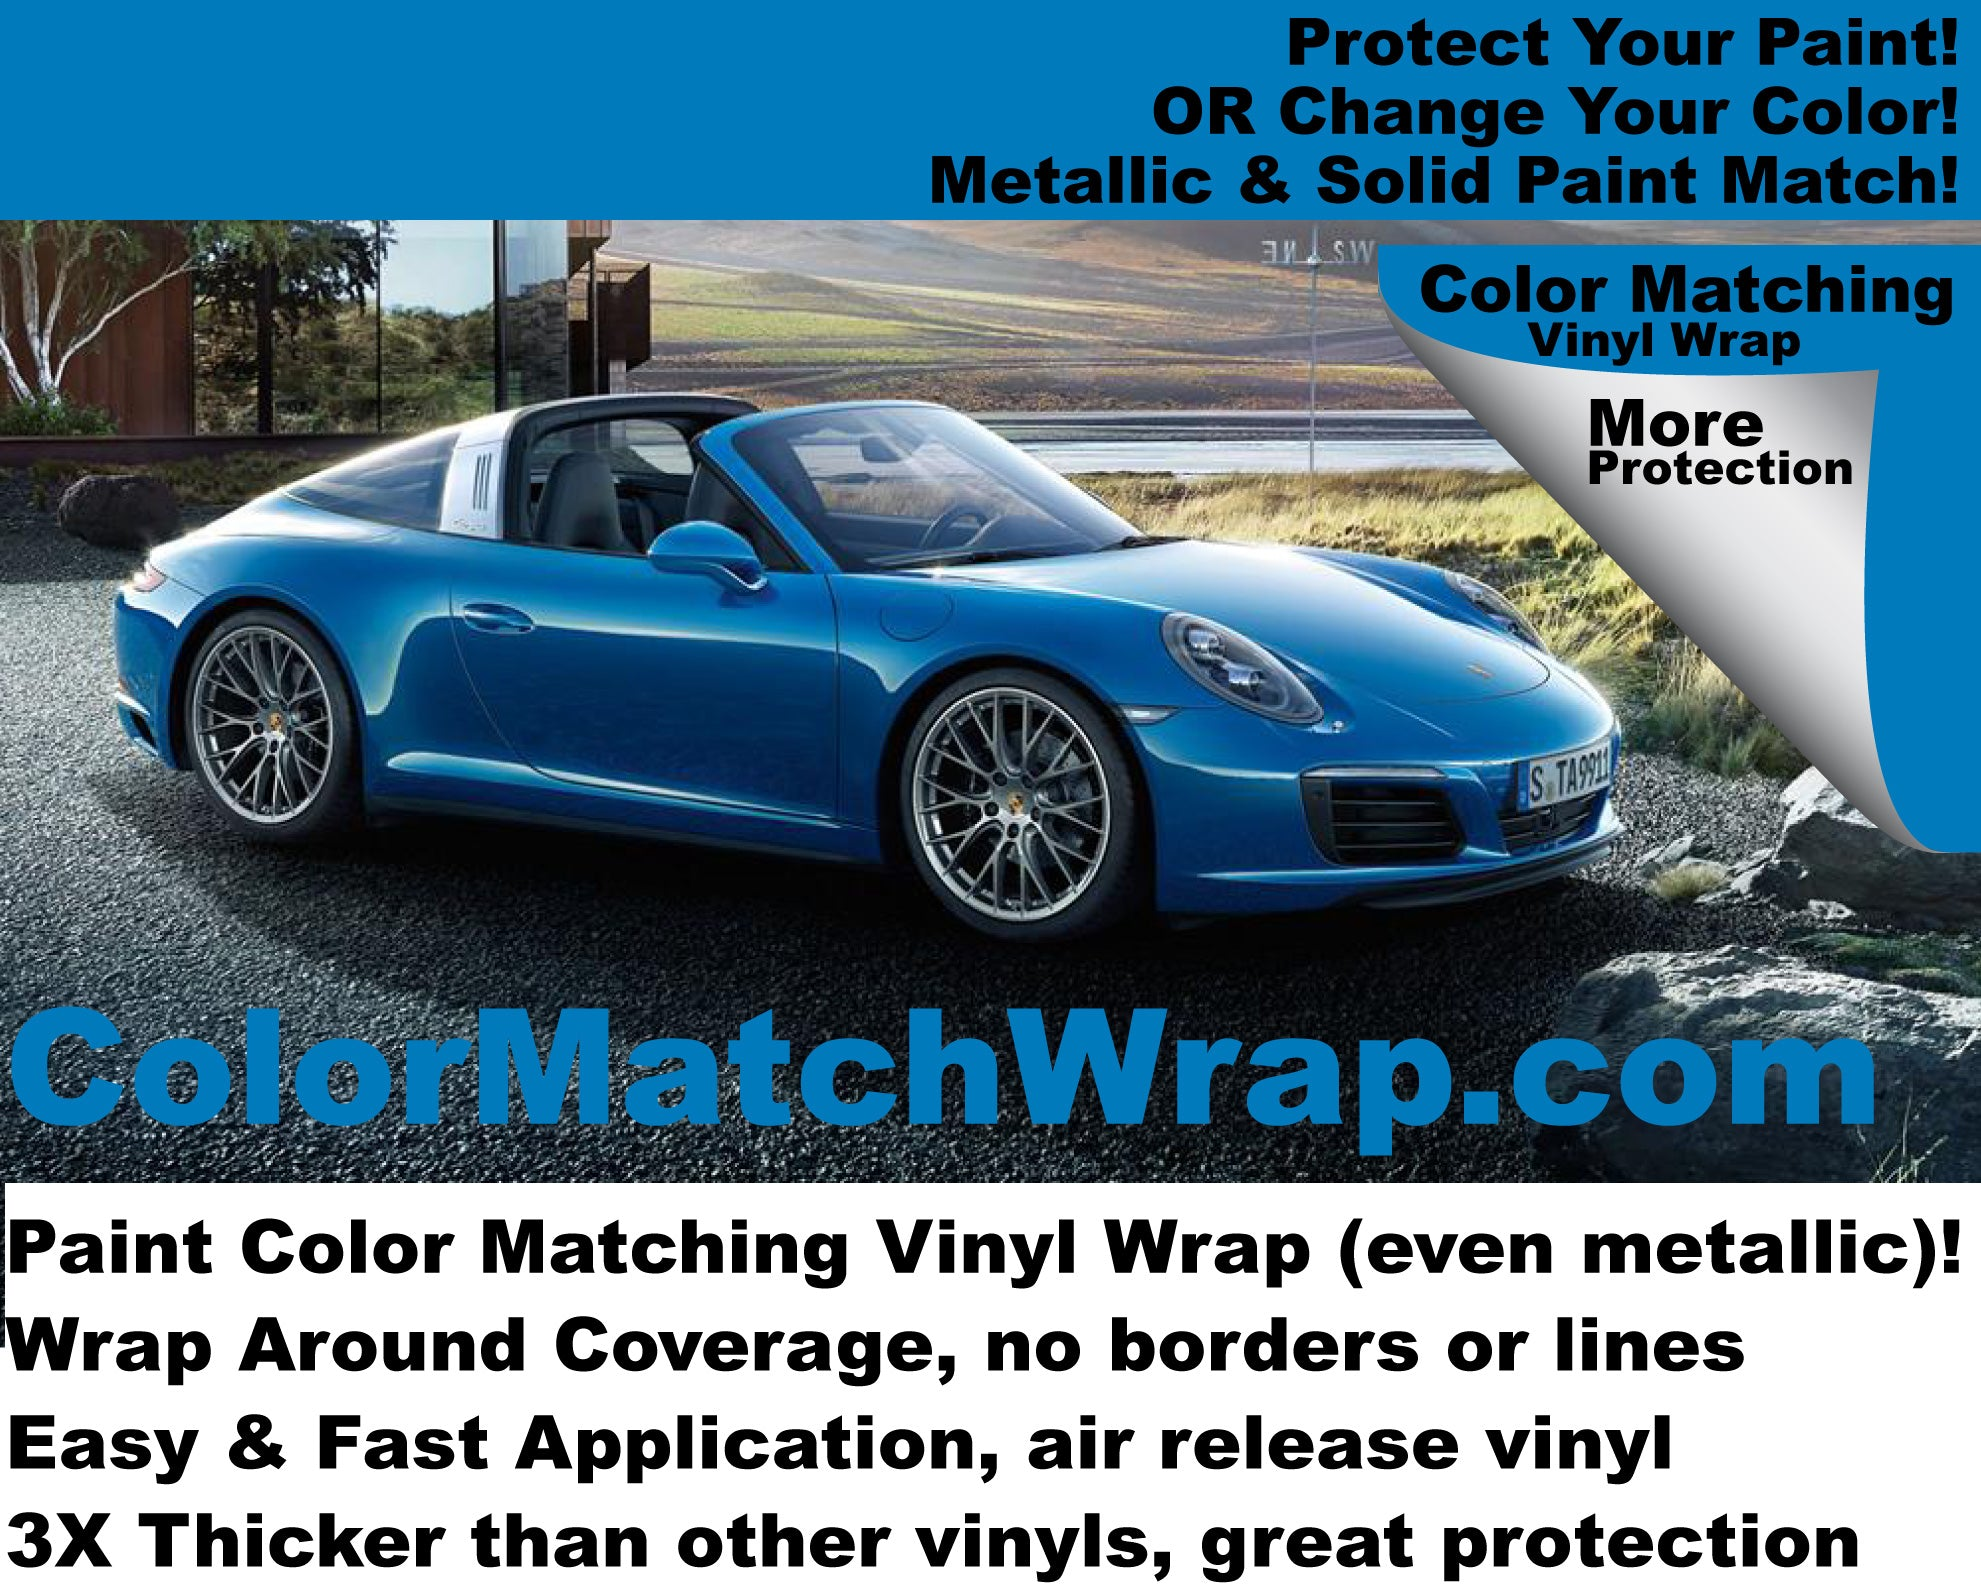 Paint Color Match Vinyl Wrap